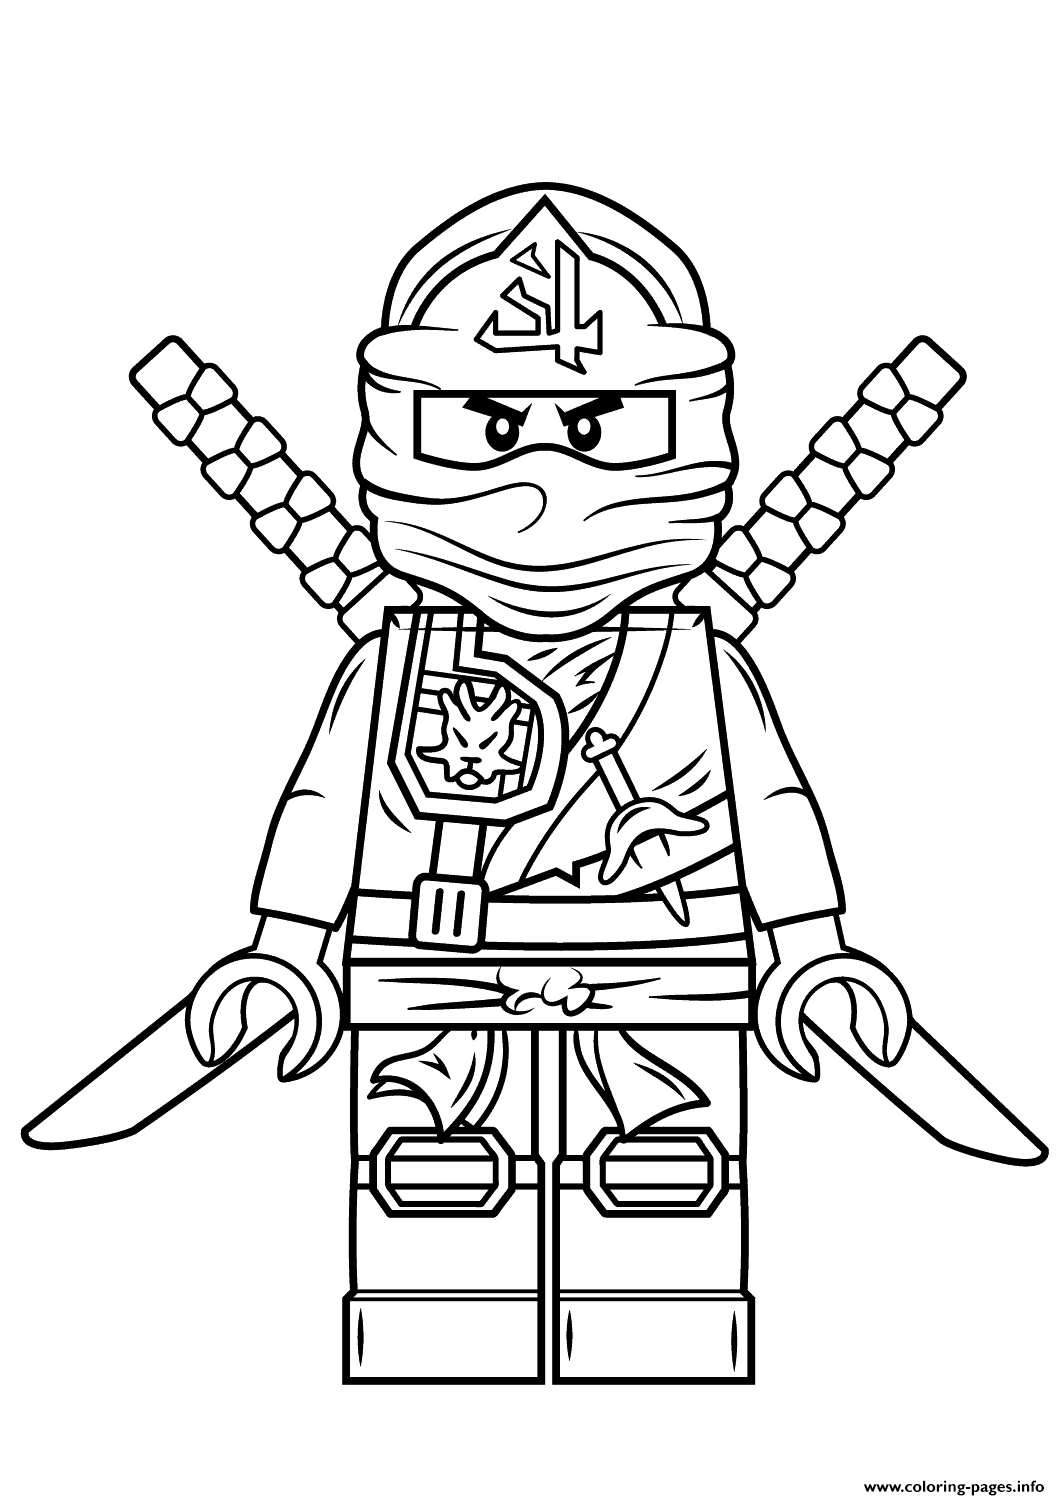 Lego Ninjago Green Ninja Coloring Pages Printable